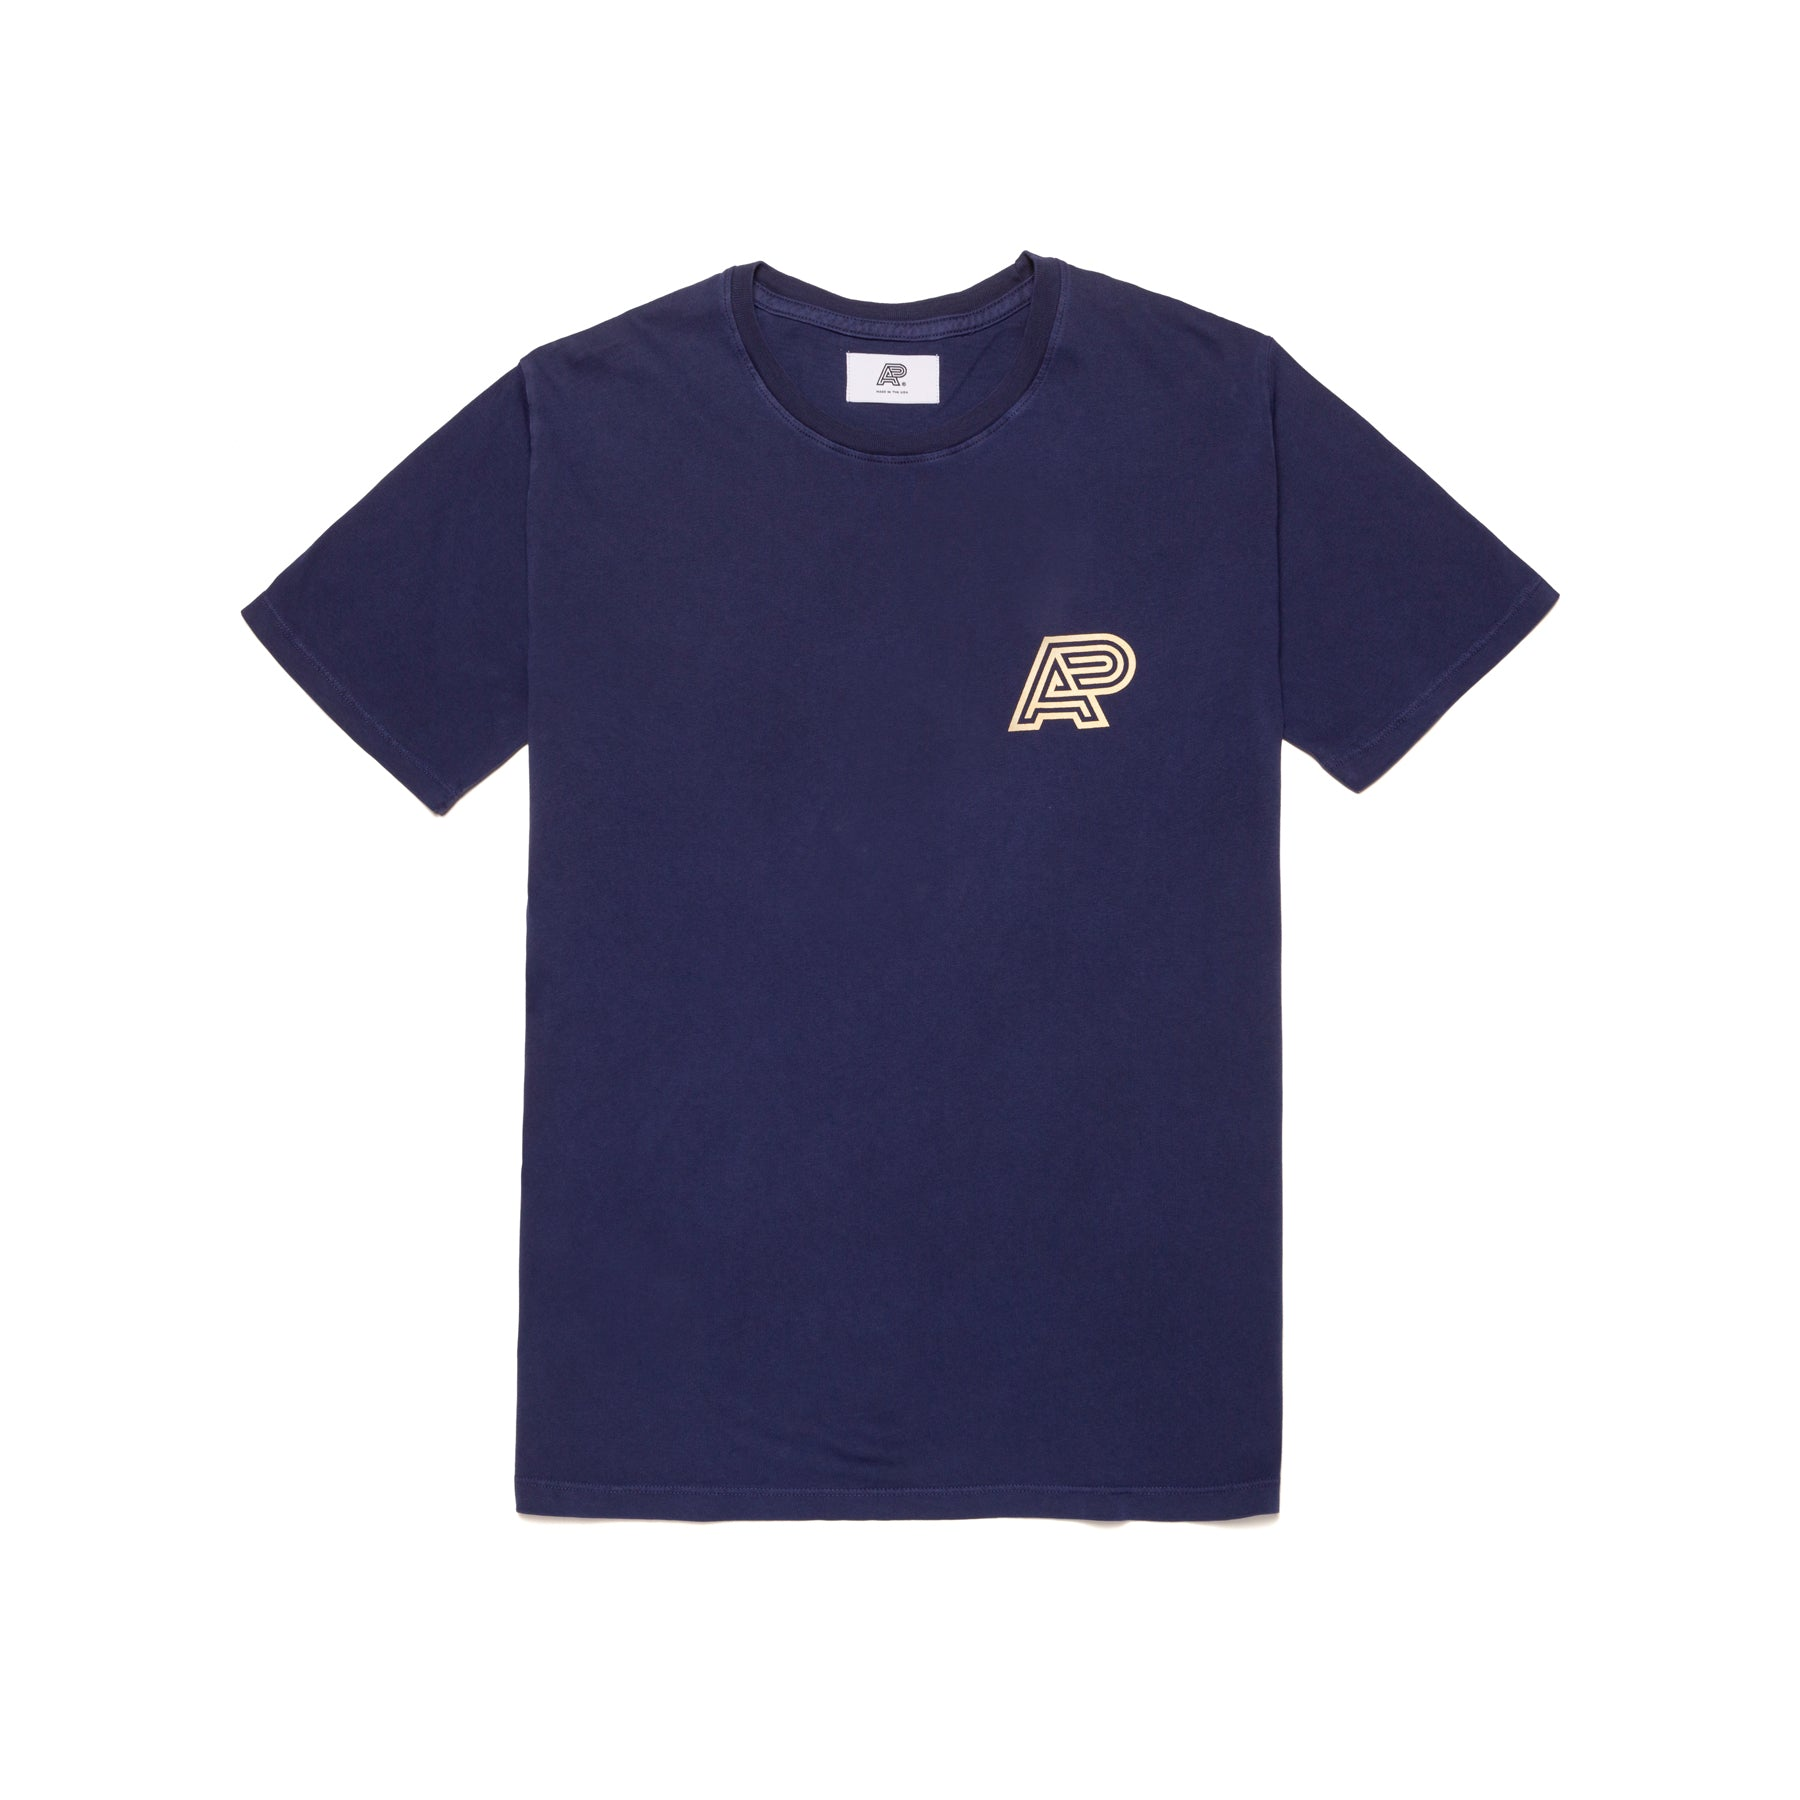 A&P NAVY PIGMENT DYED TEE